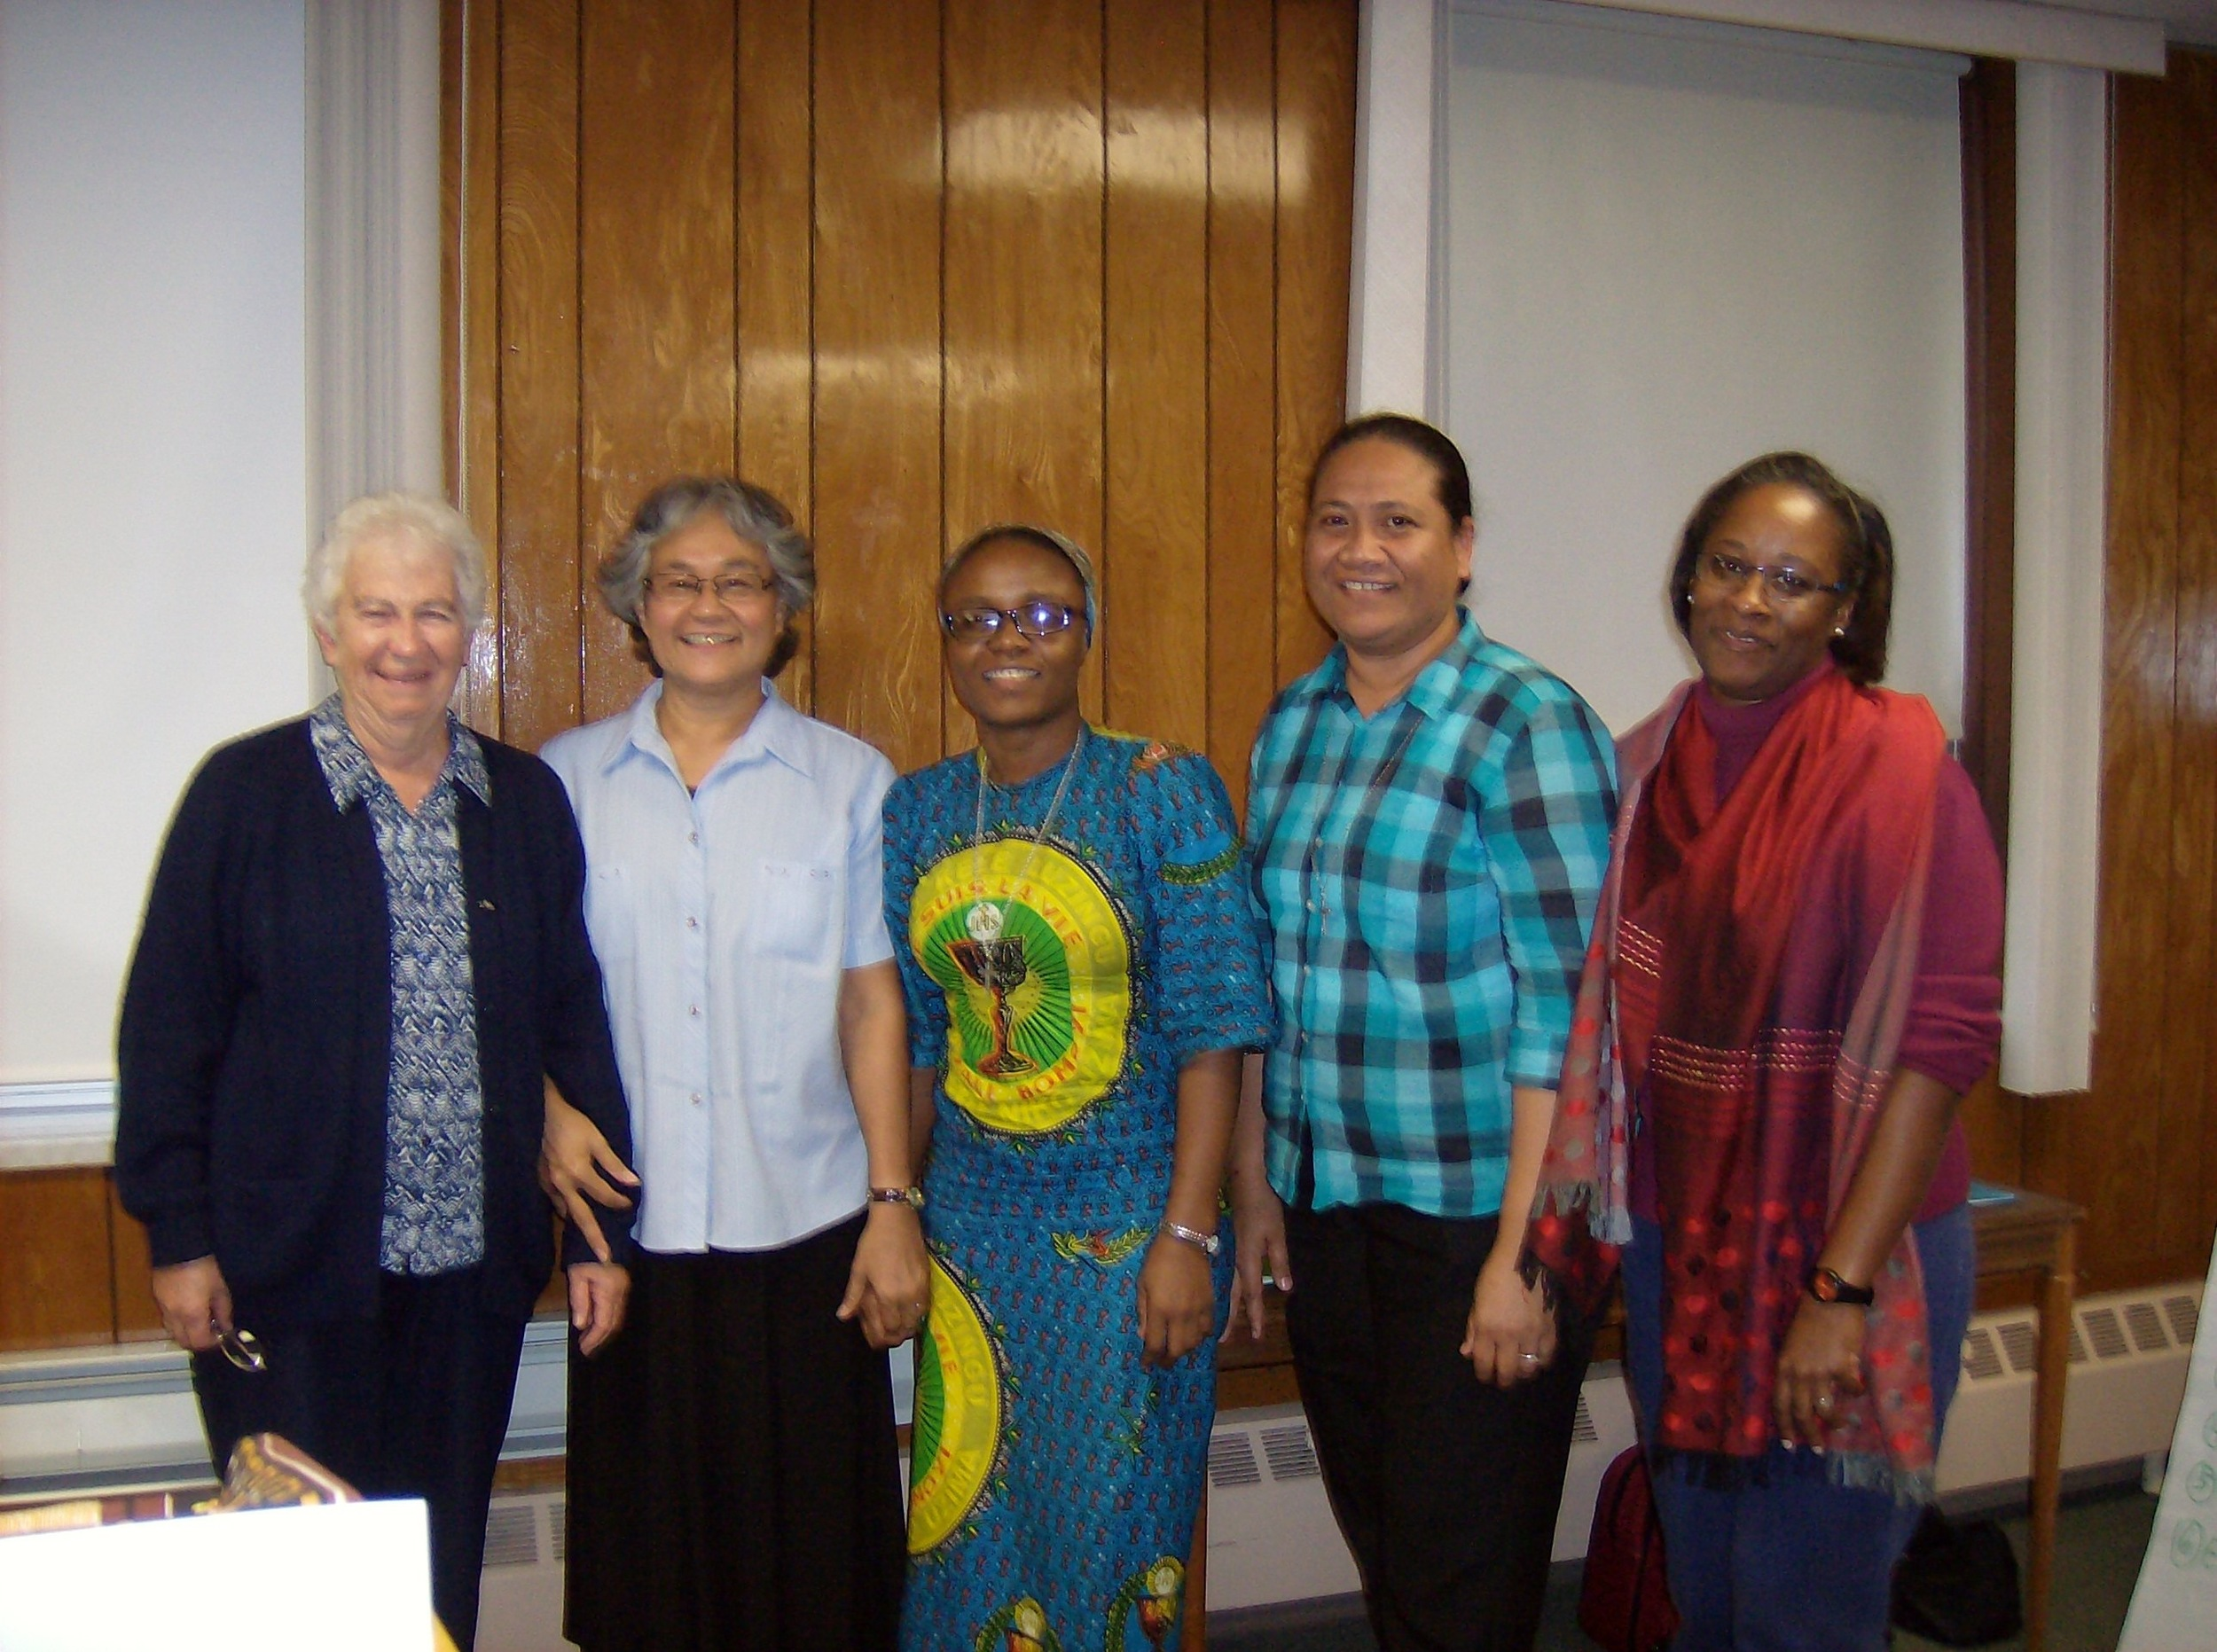 Delegates elected to attend the General Chapter in Rome in March 2016: Sisters. Mary Jane Kenney, Palepa Ioane, Esther N'sanda, Helen Muller and Michelle DeSilva.